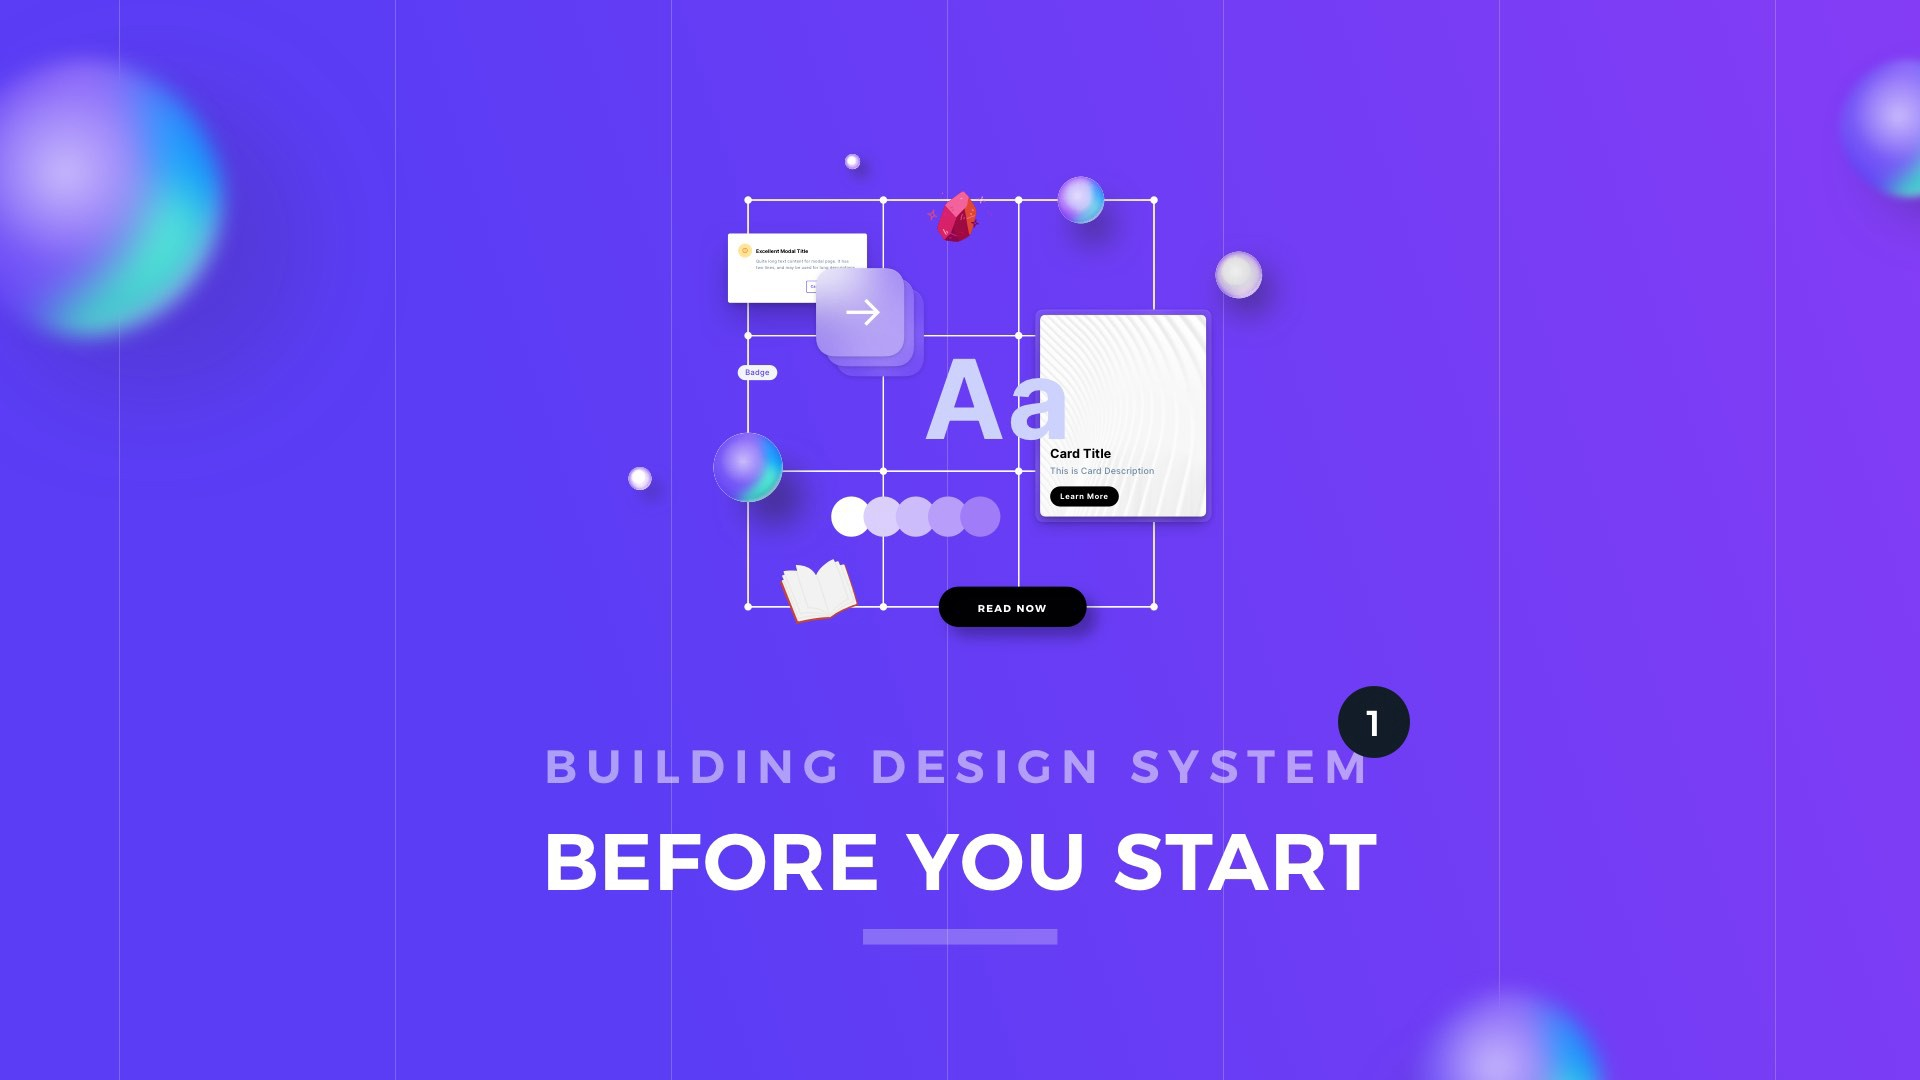 Abstract image of design system